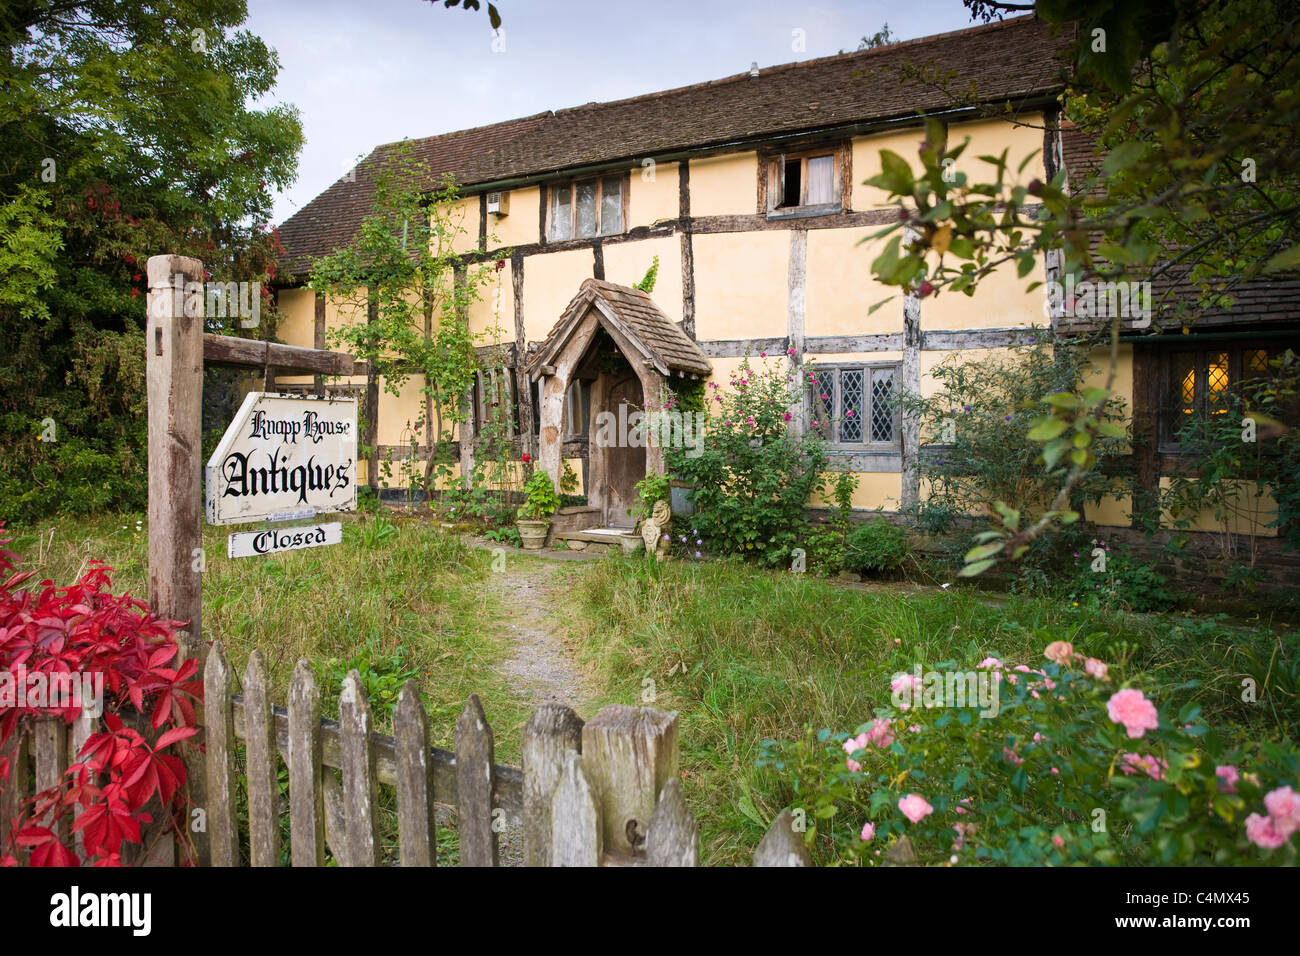 Quaint Tudor style half-timbered cottage now Knapp House antiques shop at Eardisland, Herefordshire, UK - Stock Image